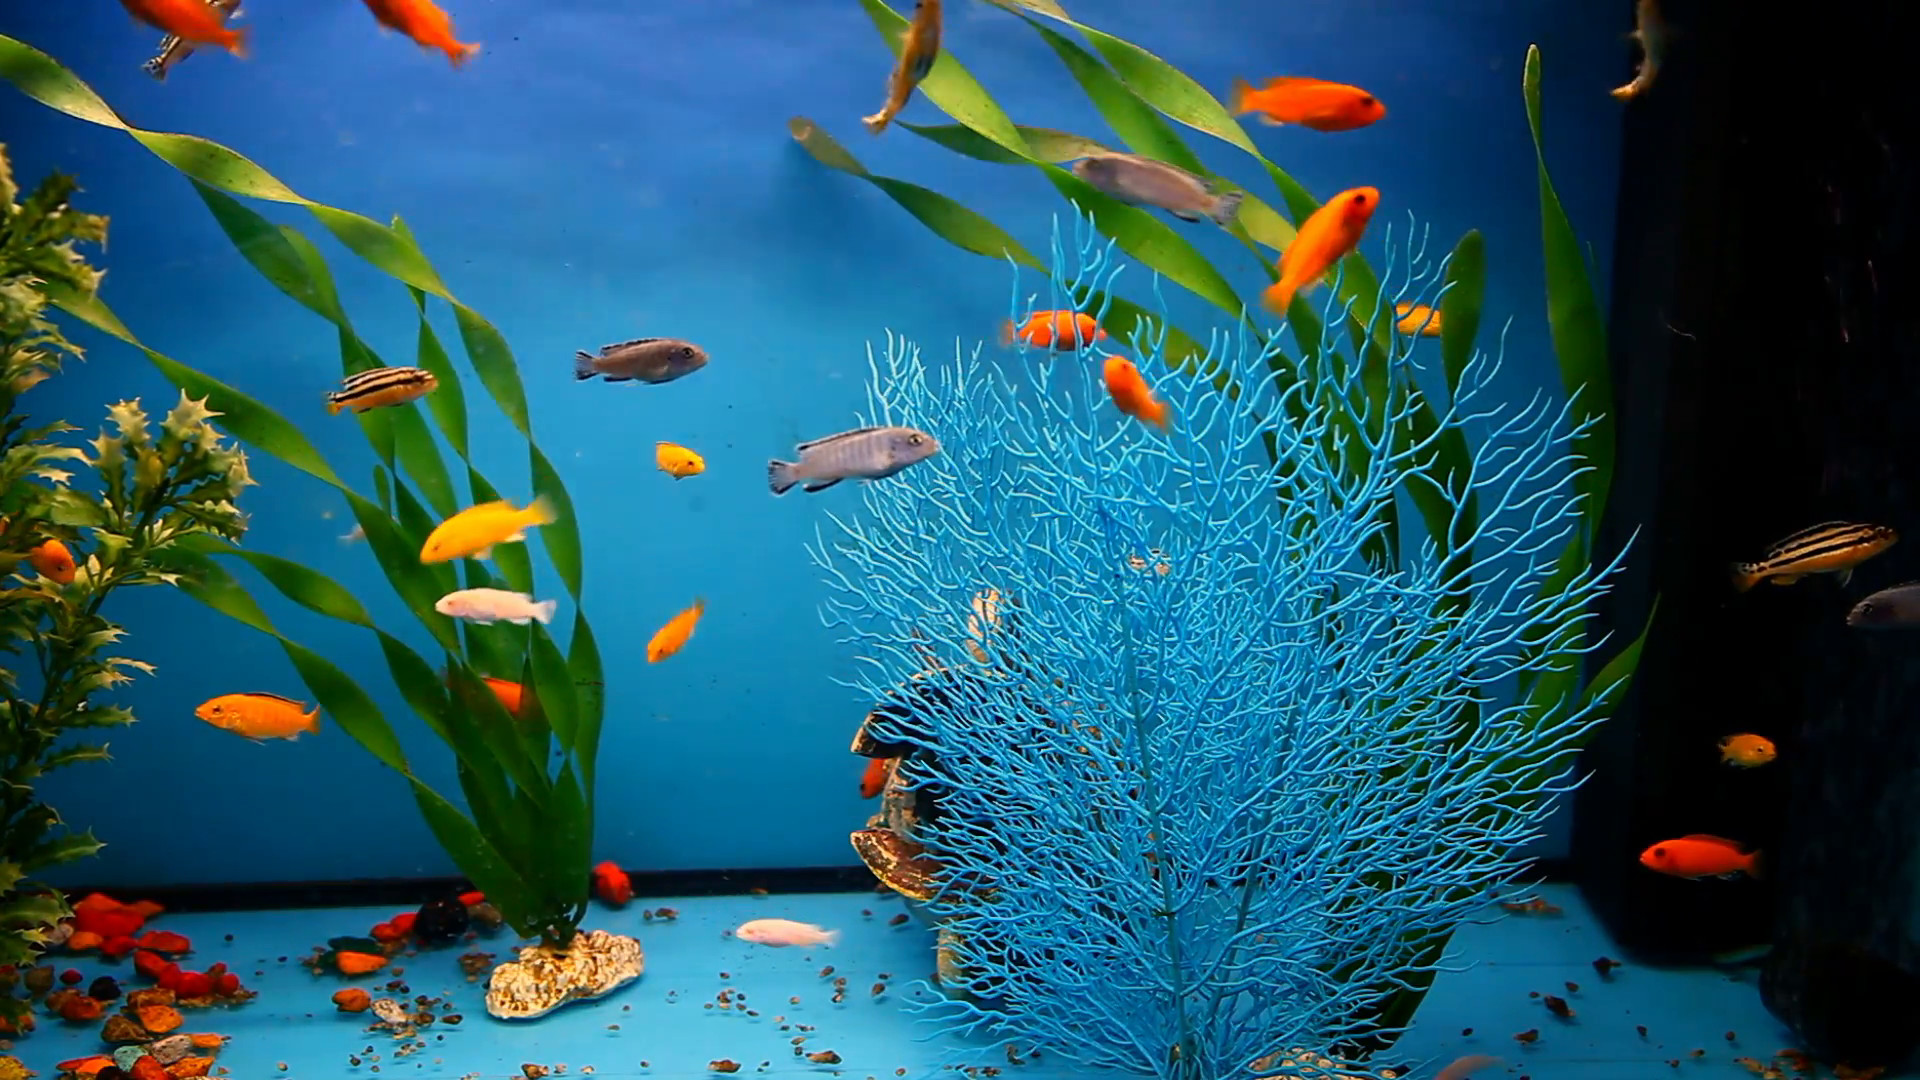 Aquatic Backgrounds 44 Pictures